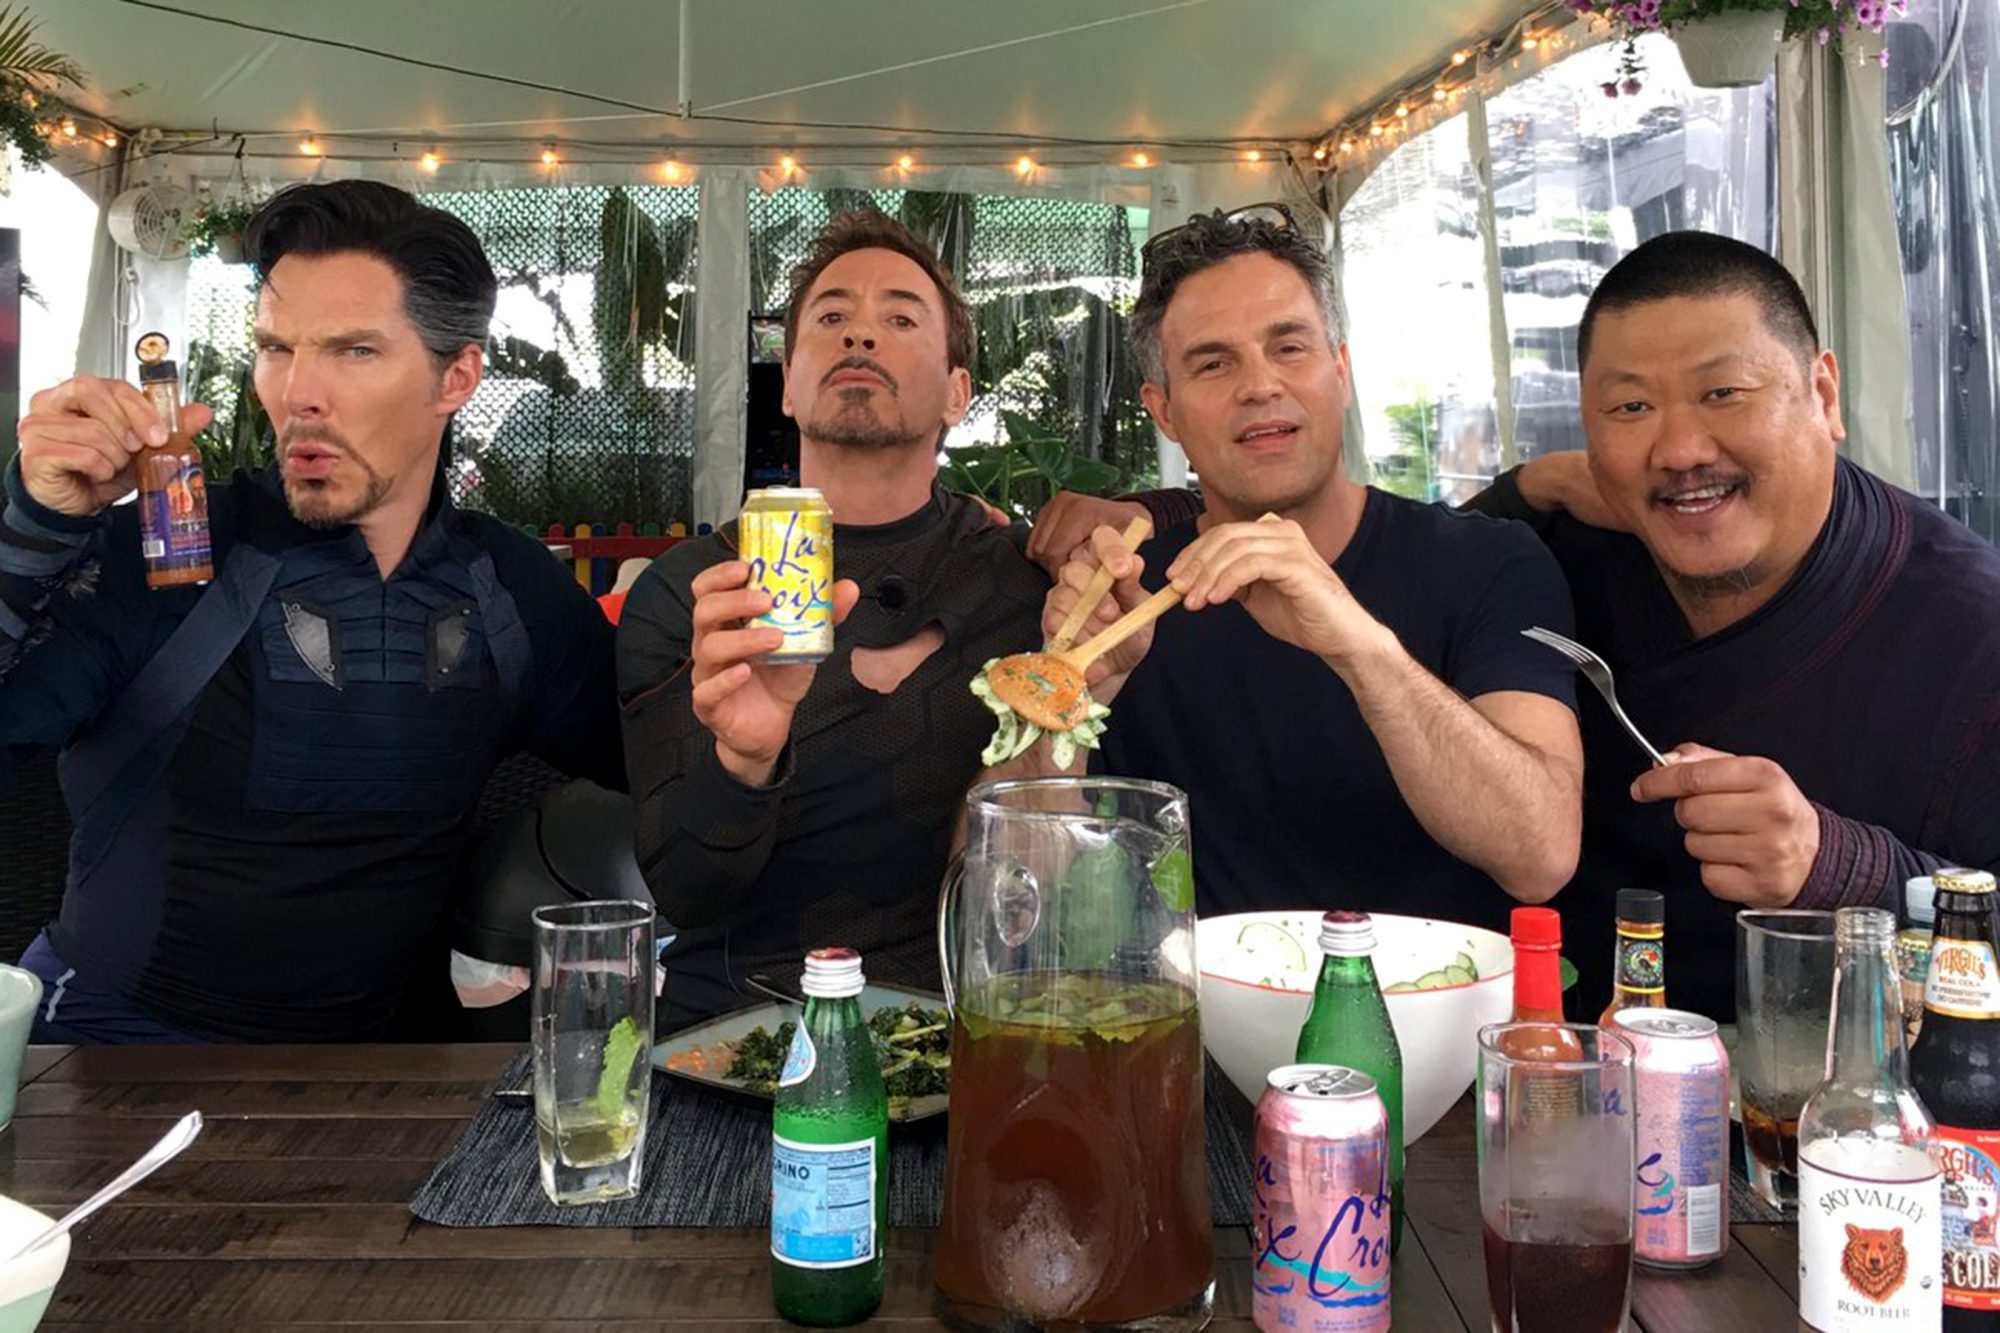 Marvel: 15 Best Behind The Scenes Photos You Have To See